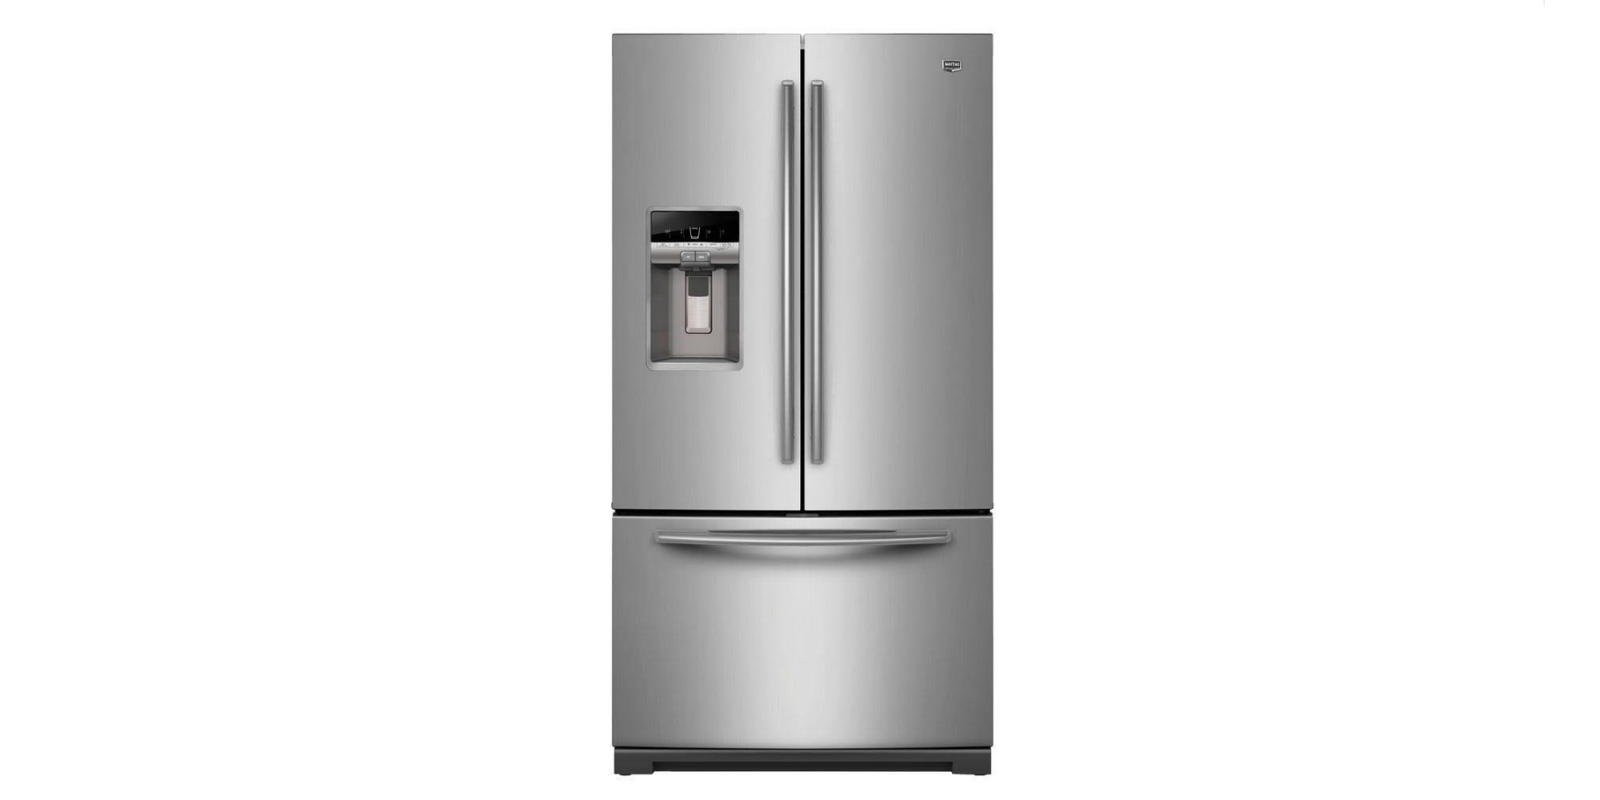 20 best refrigerators reviews and refrigerator tests refrigerator reviews apr 19 2013 share maytag french door refrigerator rubansaba